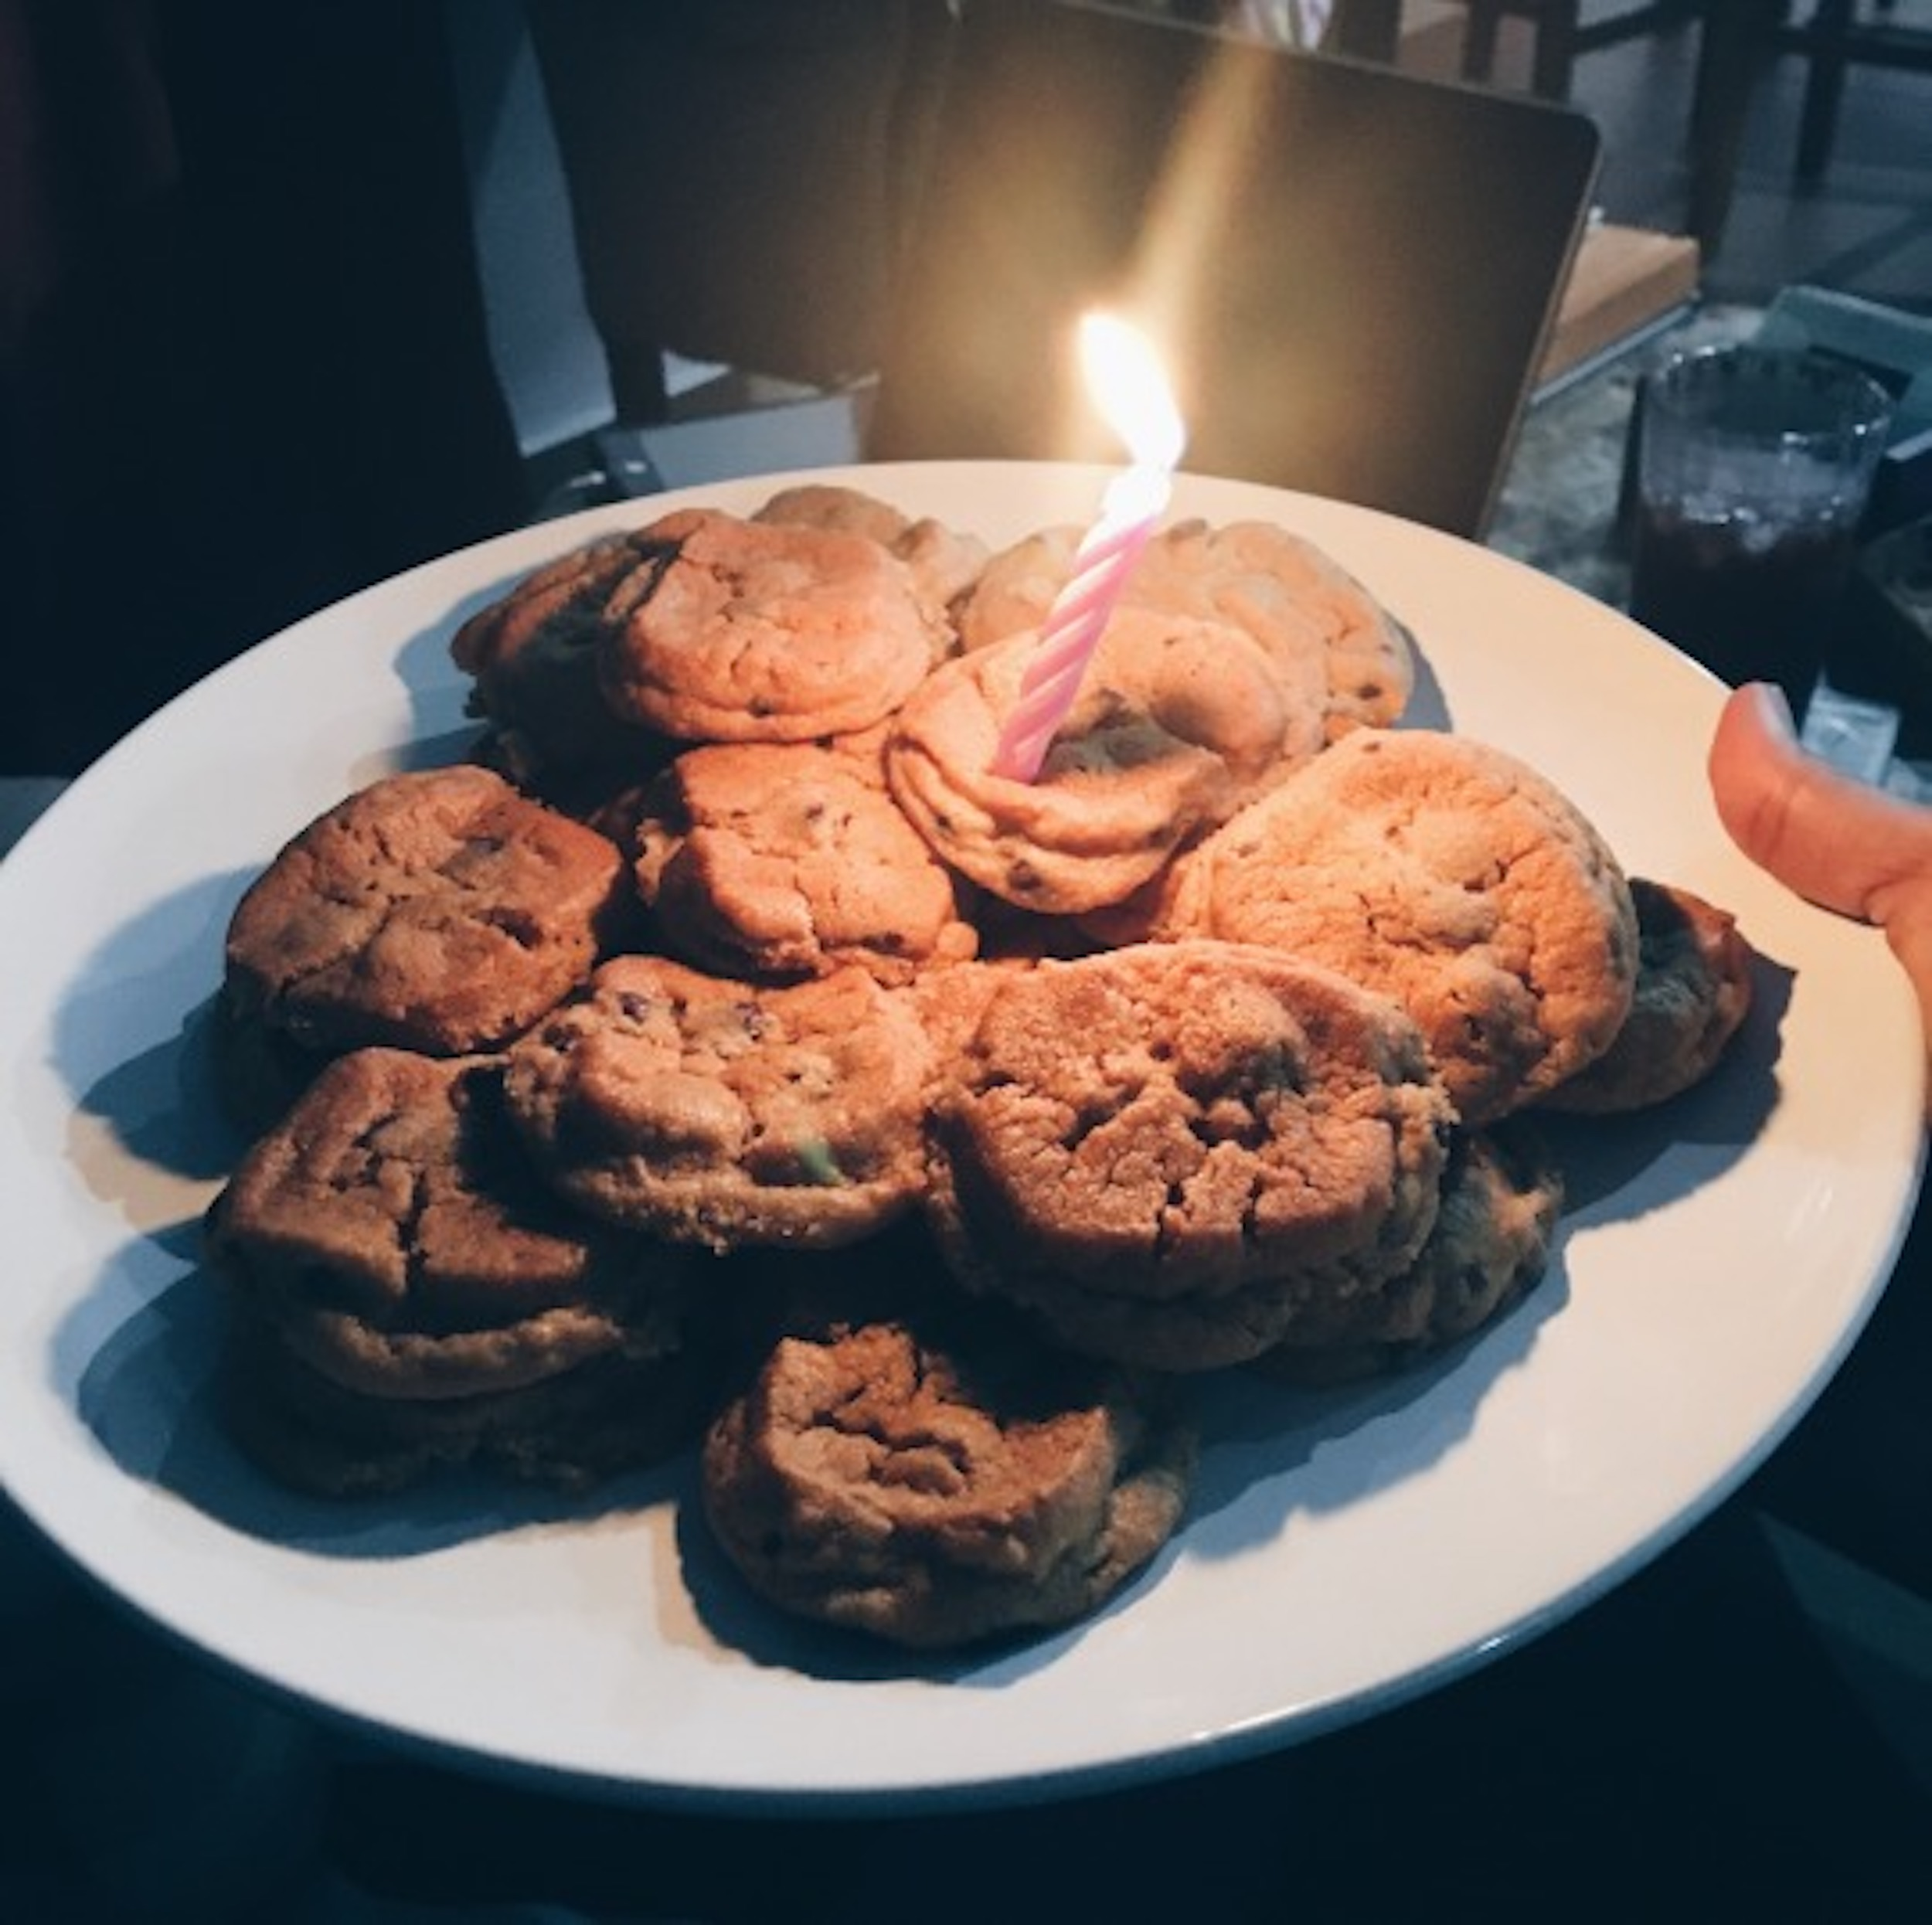 Birthday cookies for the birthday girl.